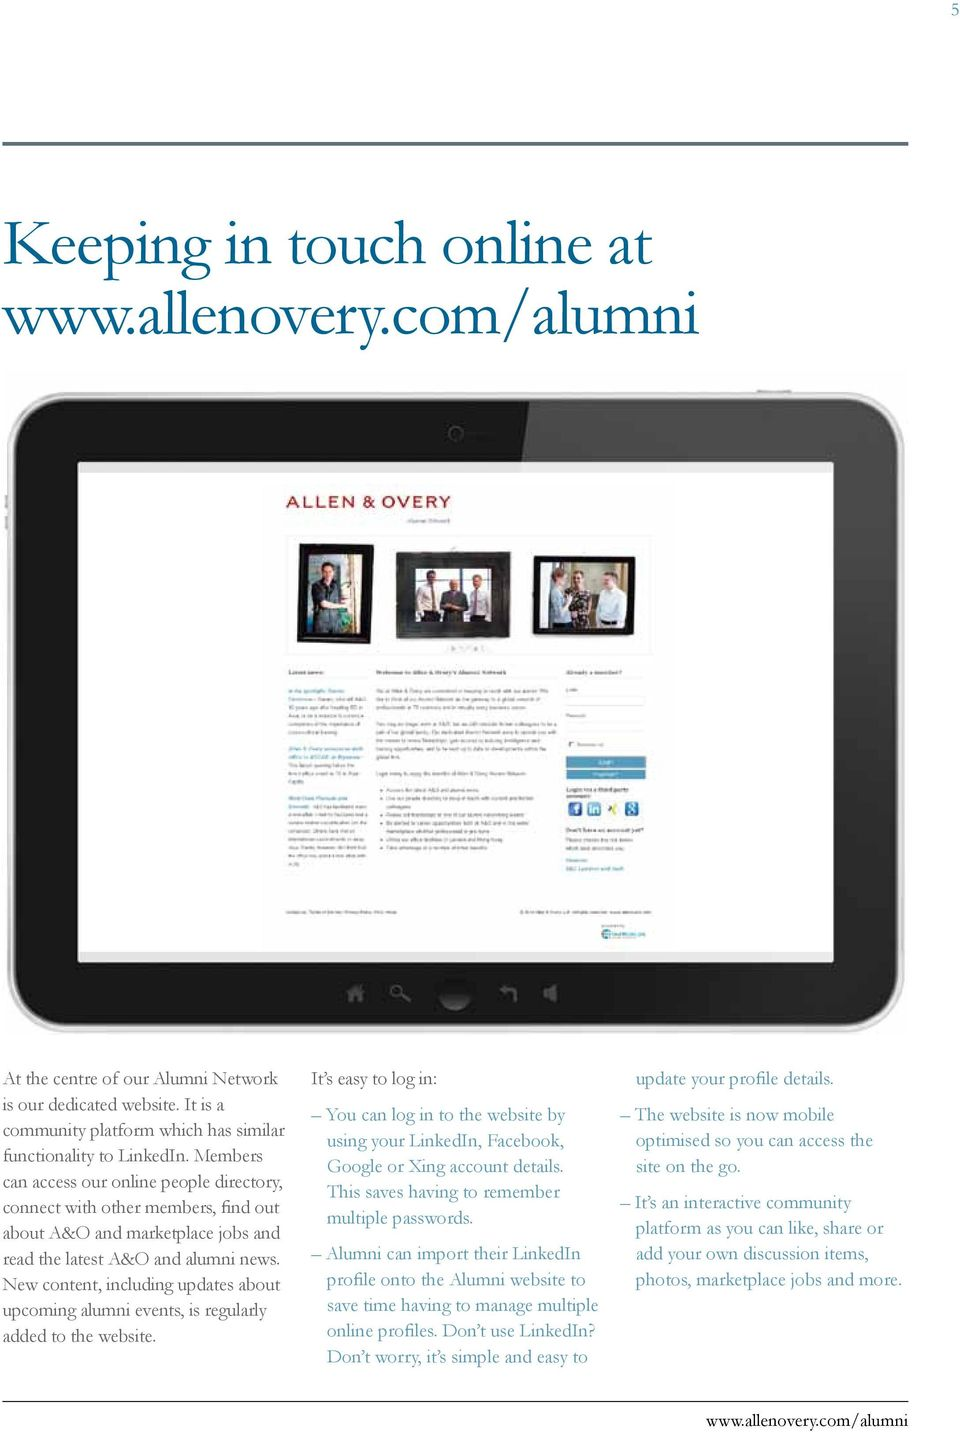 New content, including updates about upcoming alumni events, is regularly added to the website.